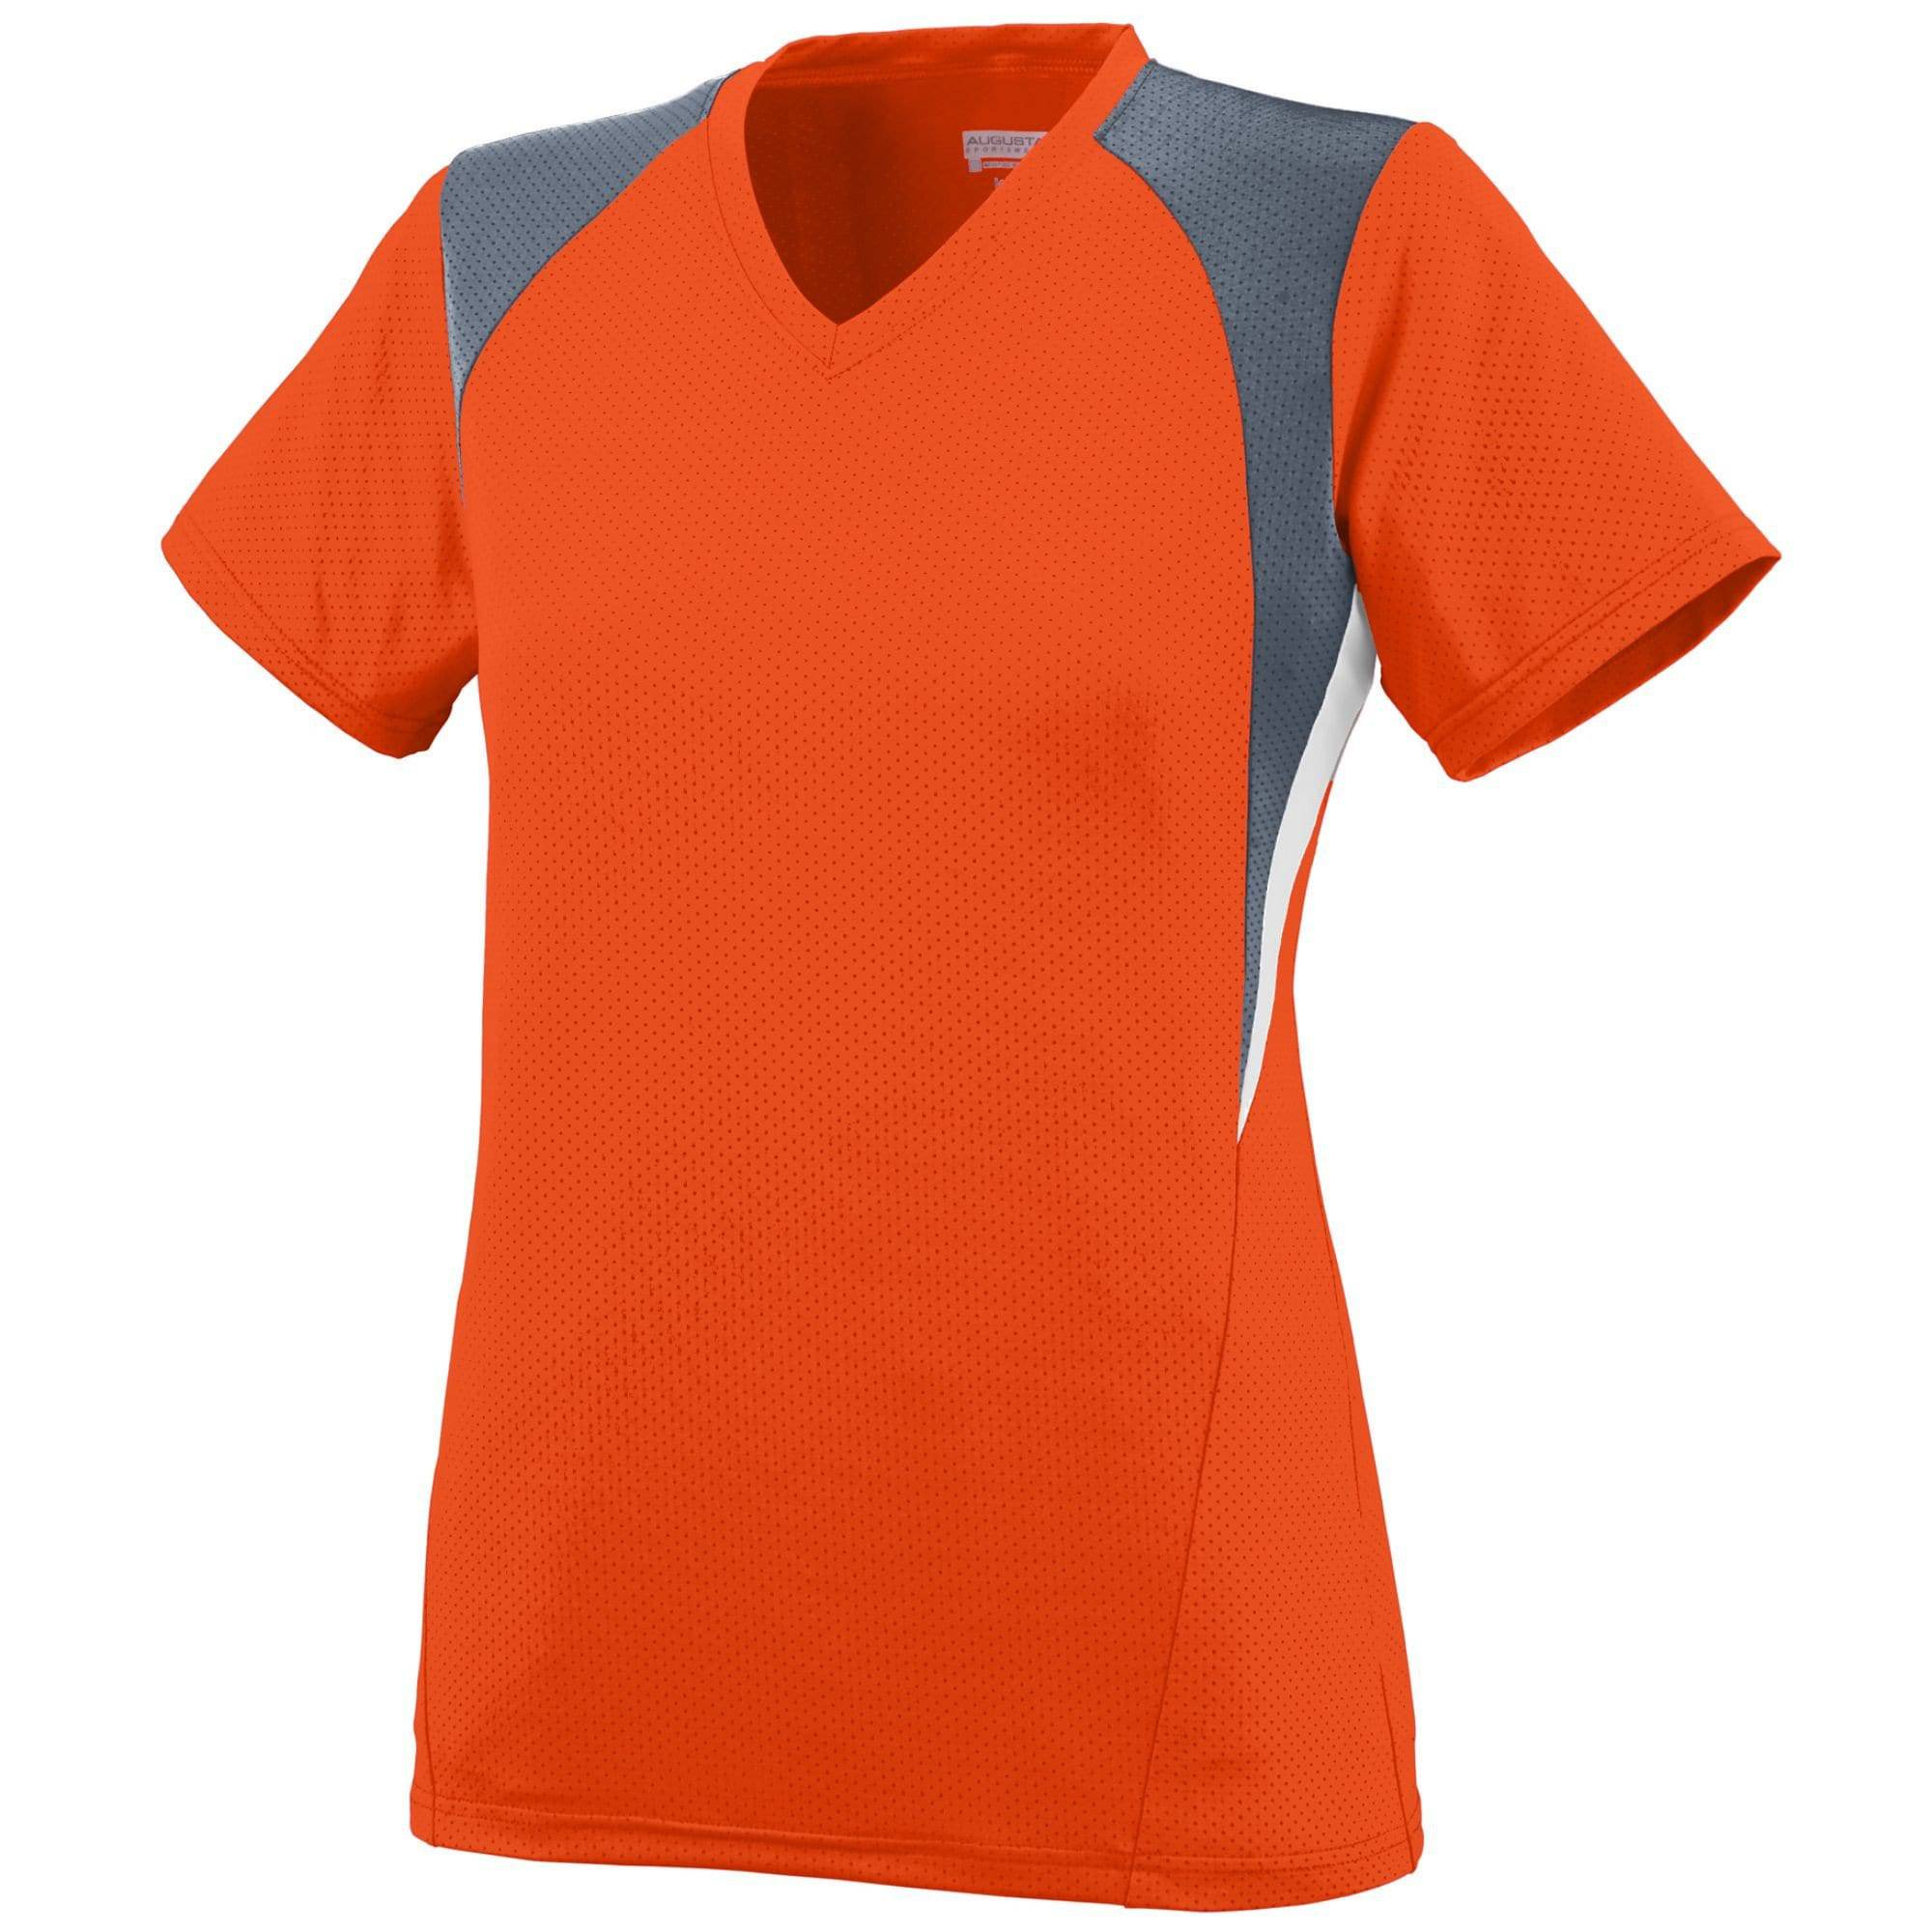 Augusta 1295 Ladies Mystic Jersey - Orange Graphite White